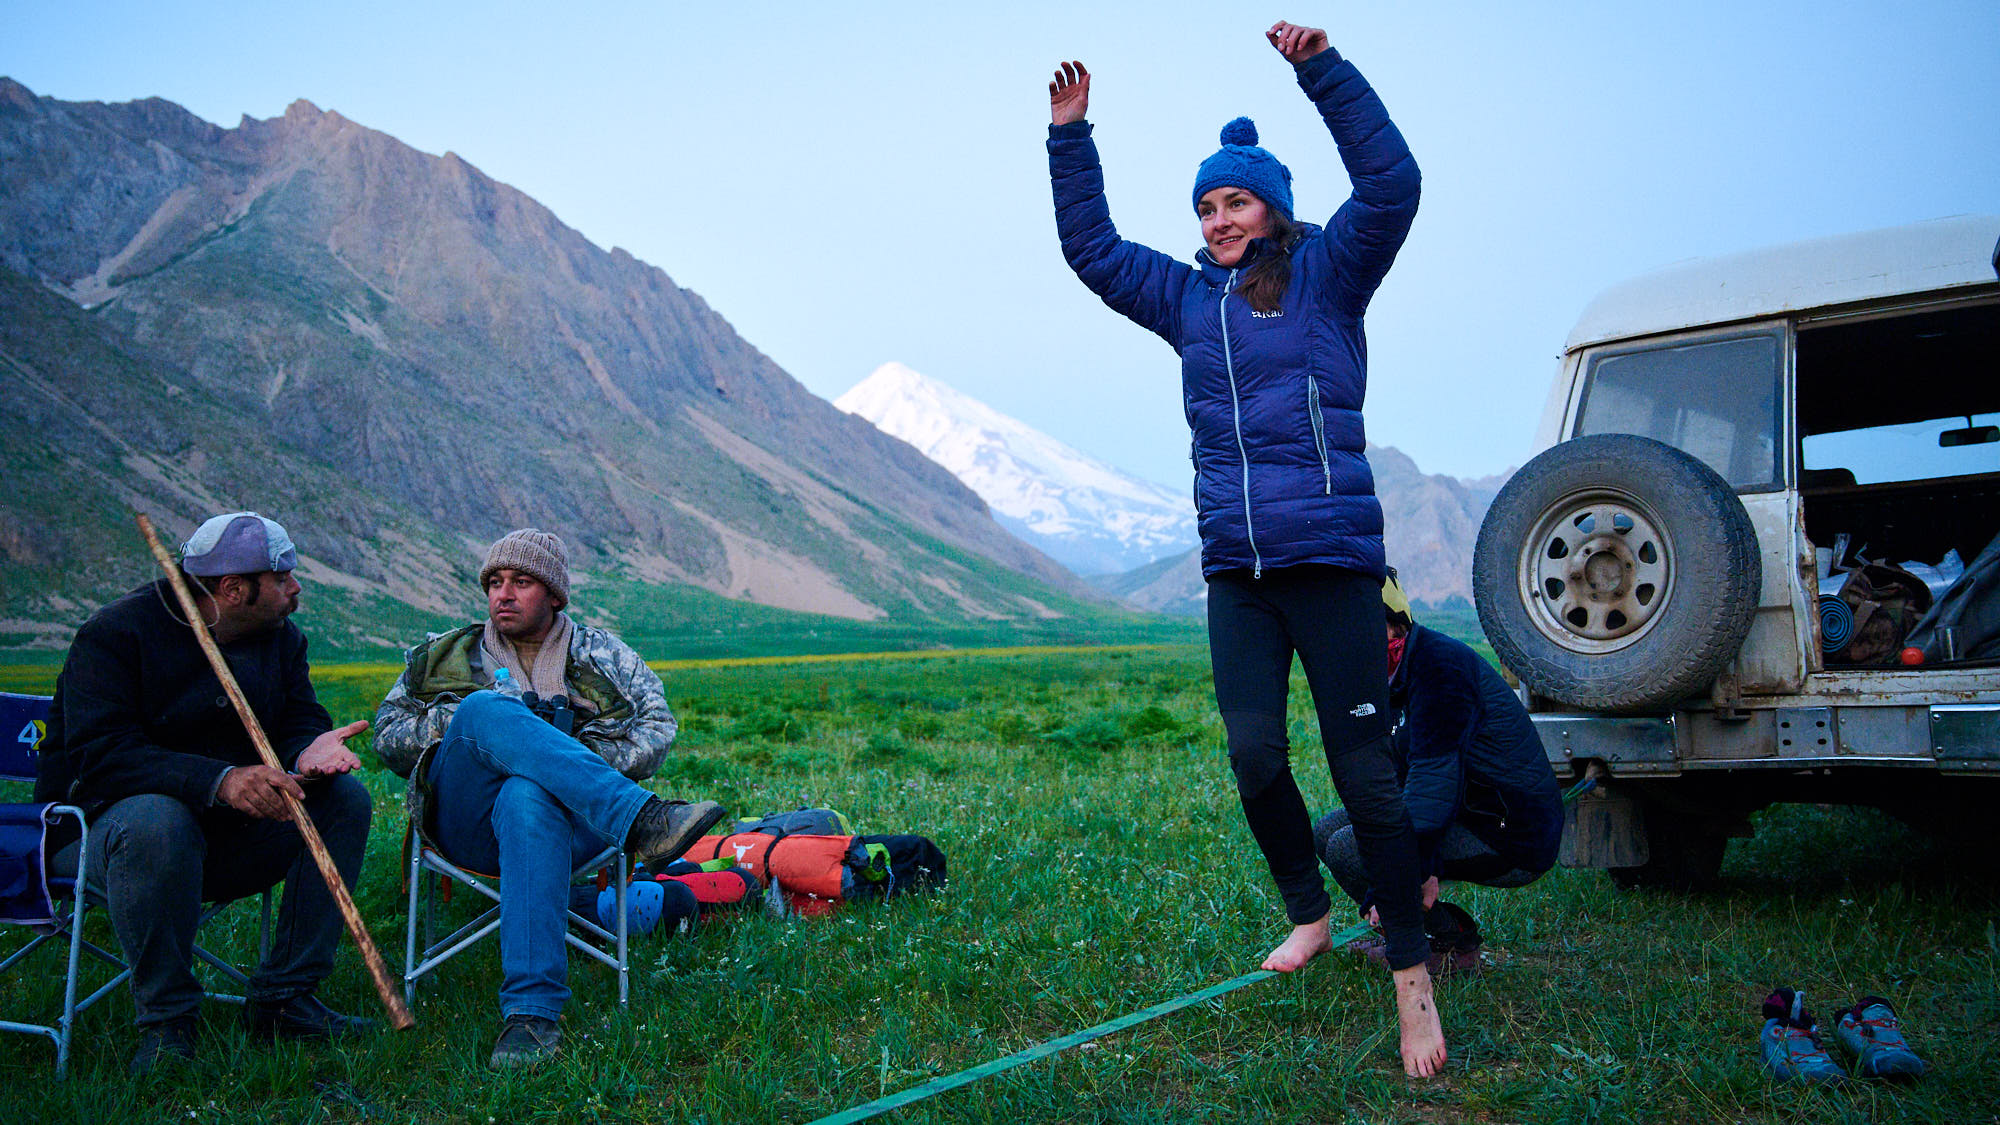 Slacklining in Dar valley in Iran